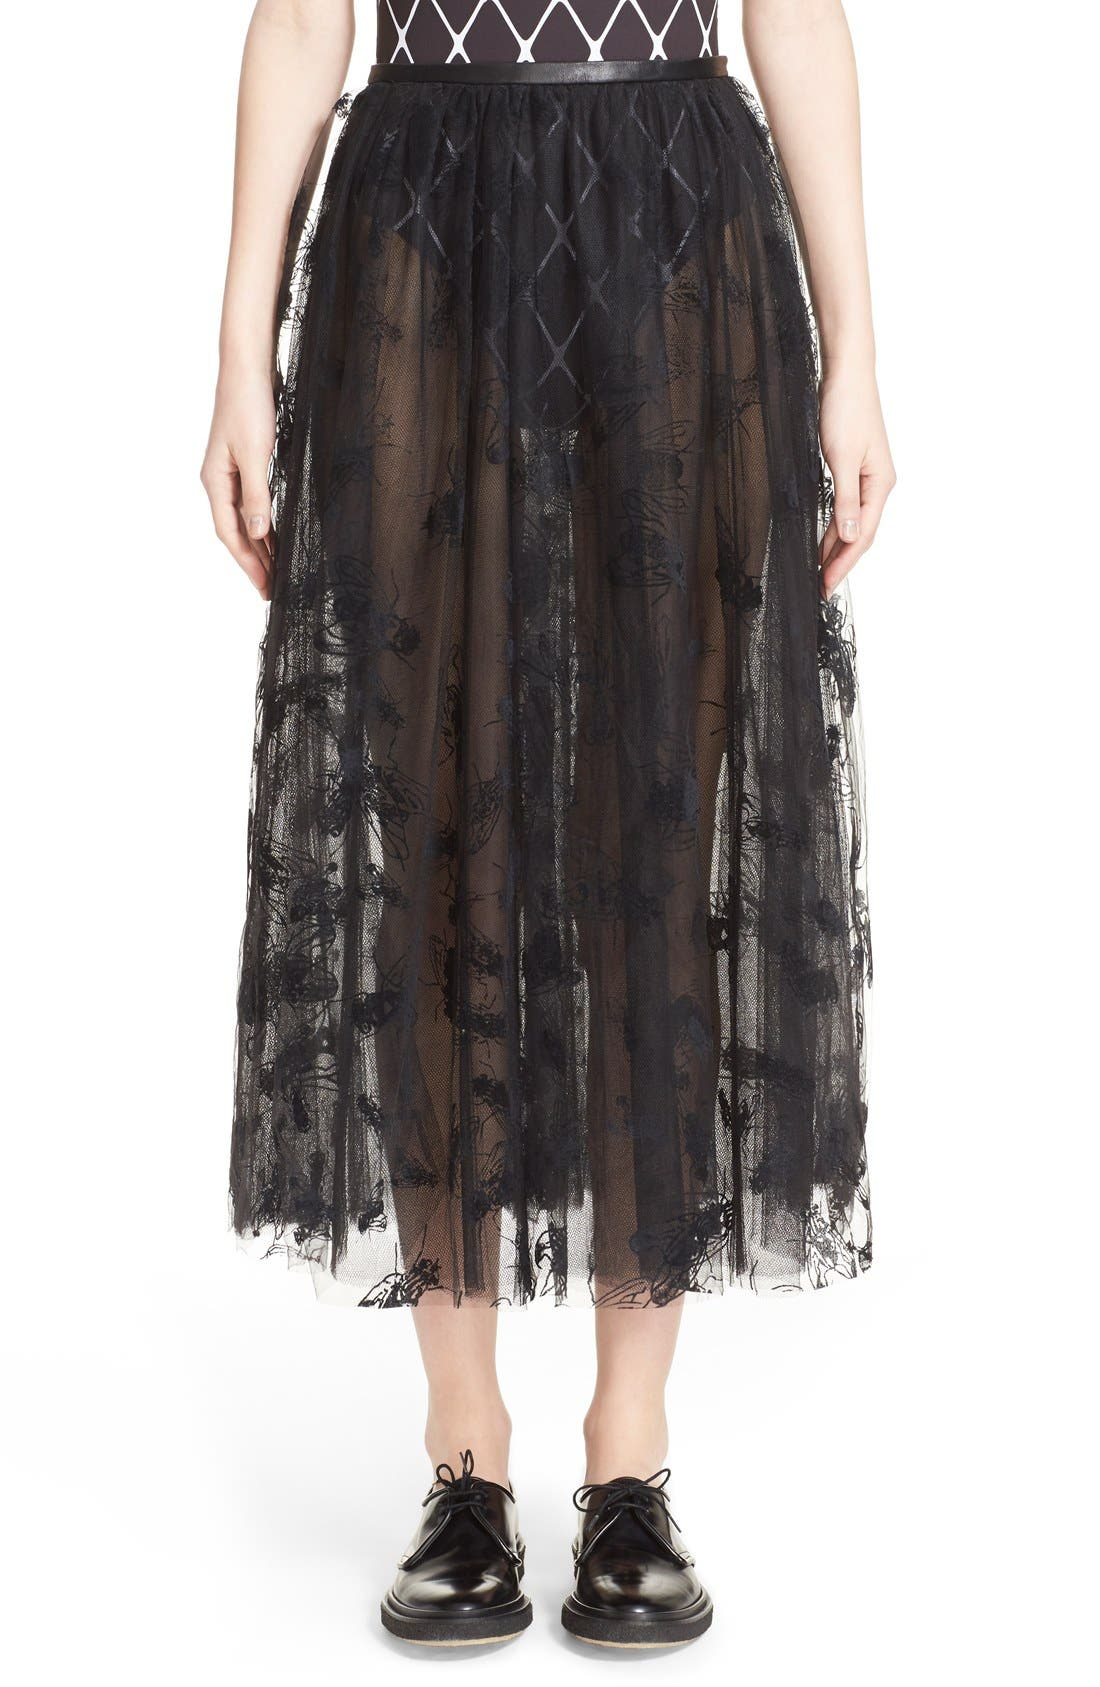 Alternate Image 1 Selected - Ashley Williams 'Flock Fly' Sheer Tulle Skirt